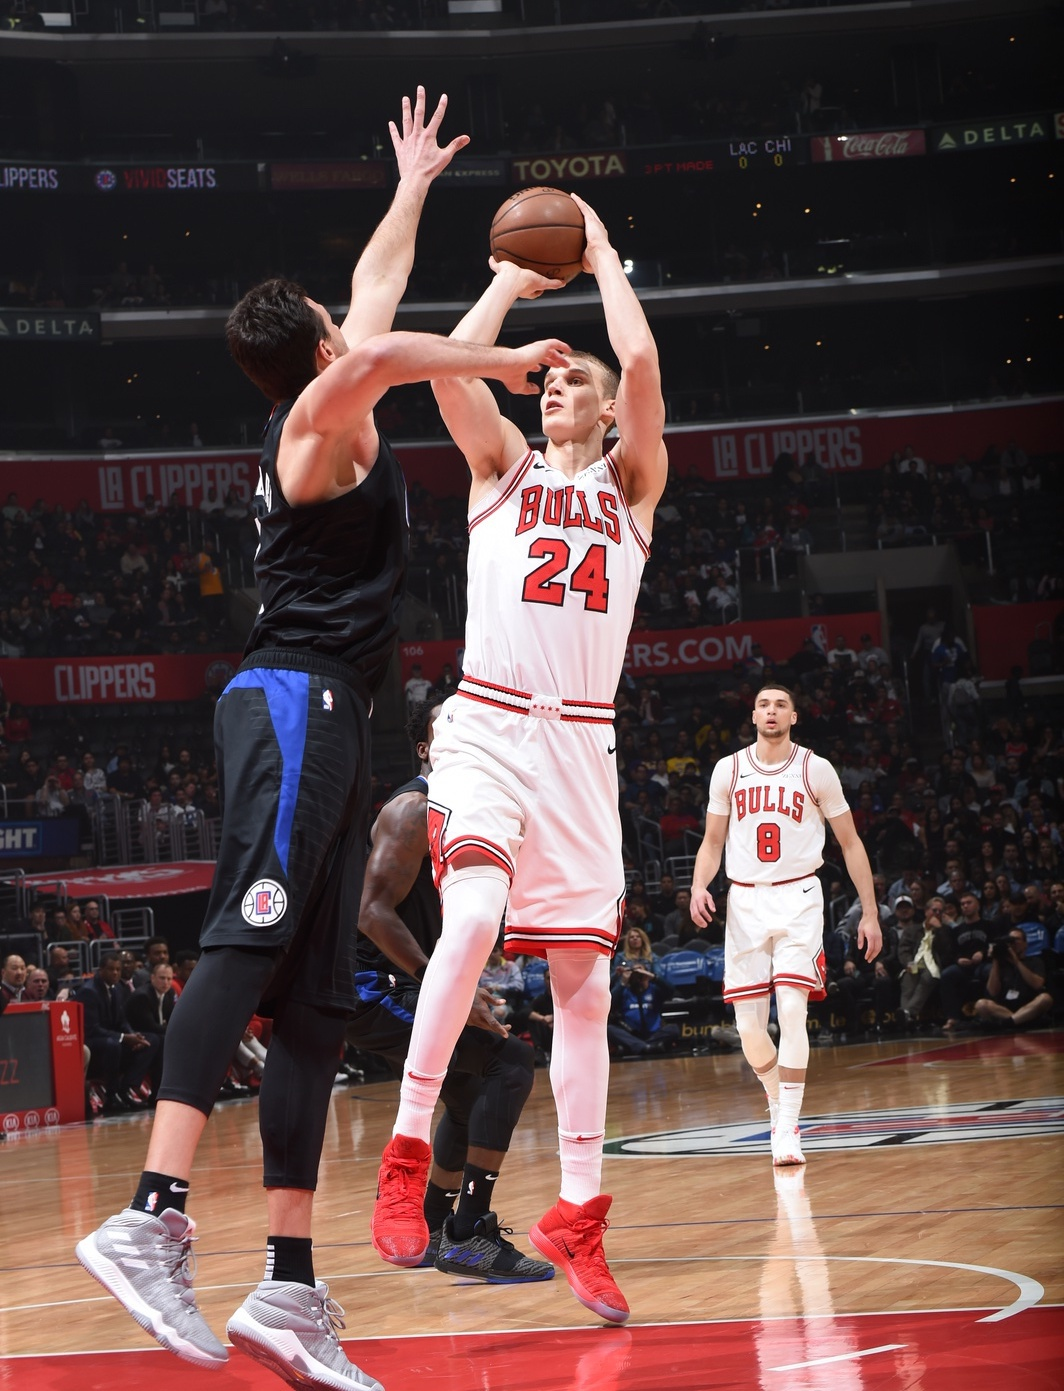 Markkanen shoots the ball